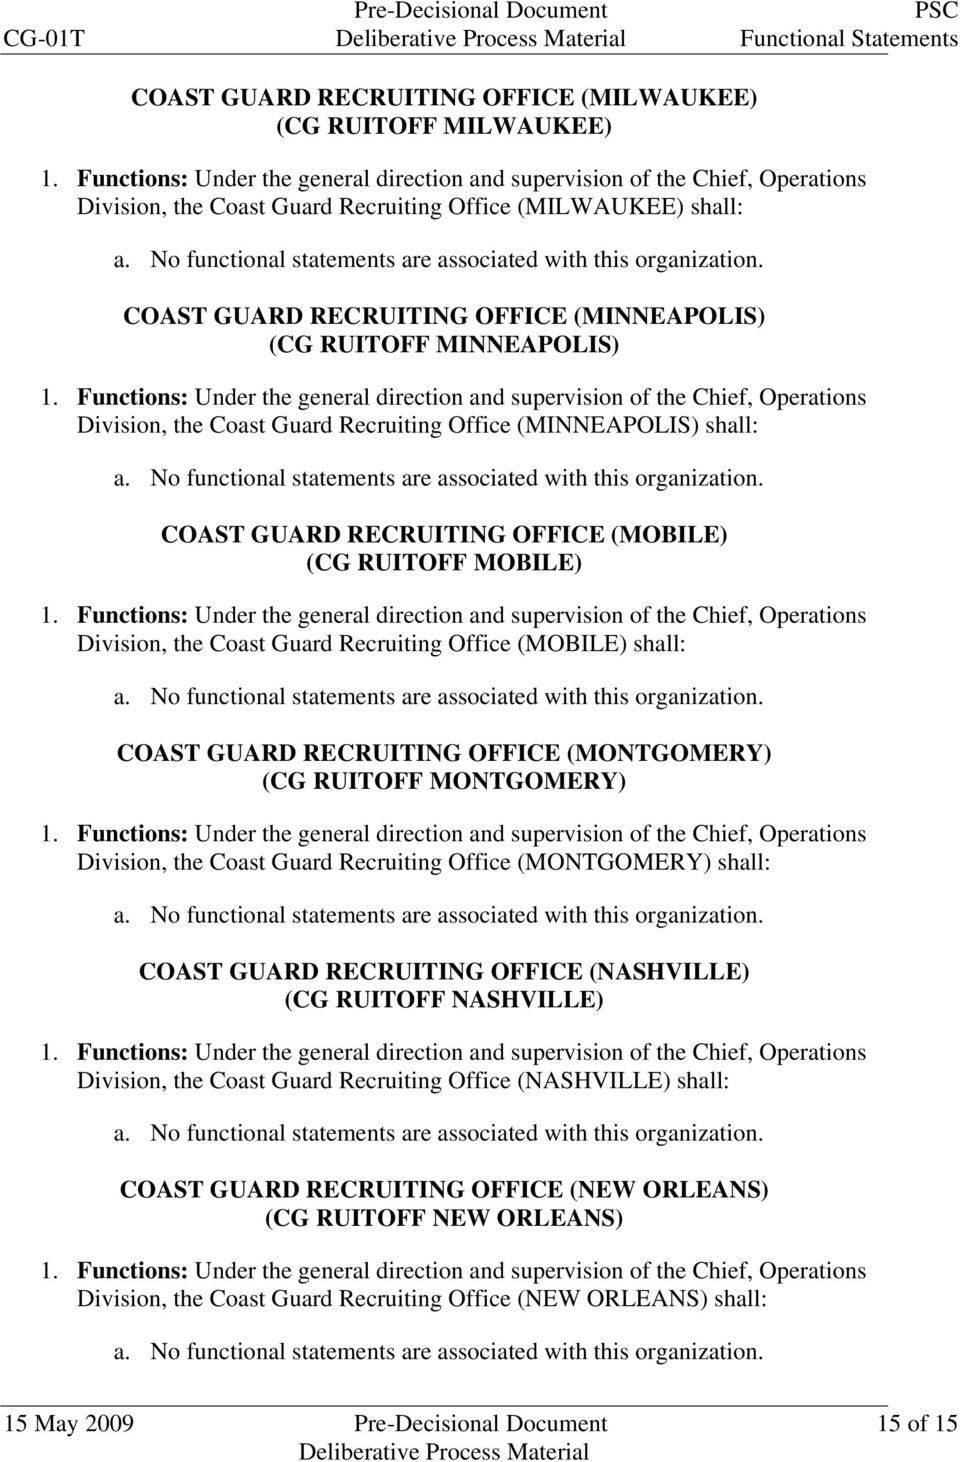 Office (MOBILE) shall: COAST GUARD RECRUITING OFFICE (MONTGOMERY) (CG RUITOFF MONTGOMERY) Division, the Coast Guard Recruiting Office (MONTGOMERY) shall: COAST GUARD RECRUITING OFFICE (NASHVILLE) (CG